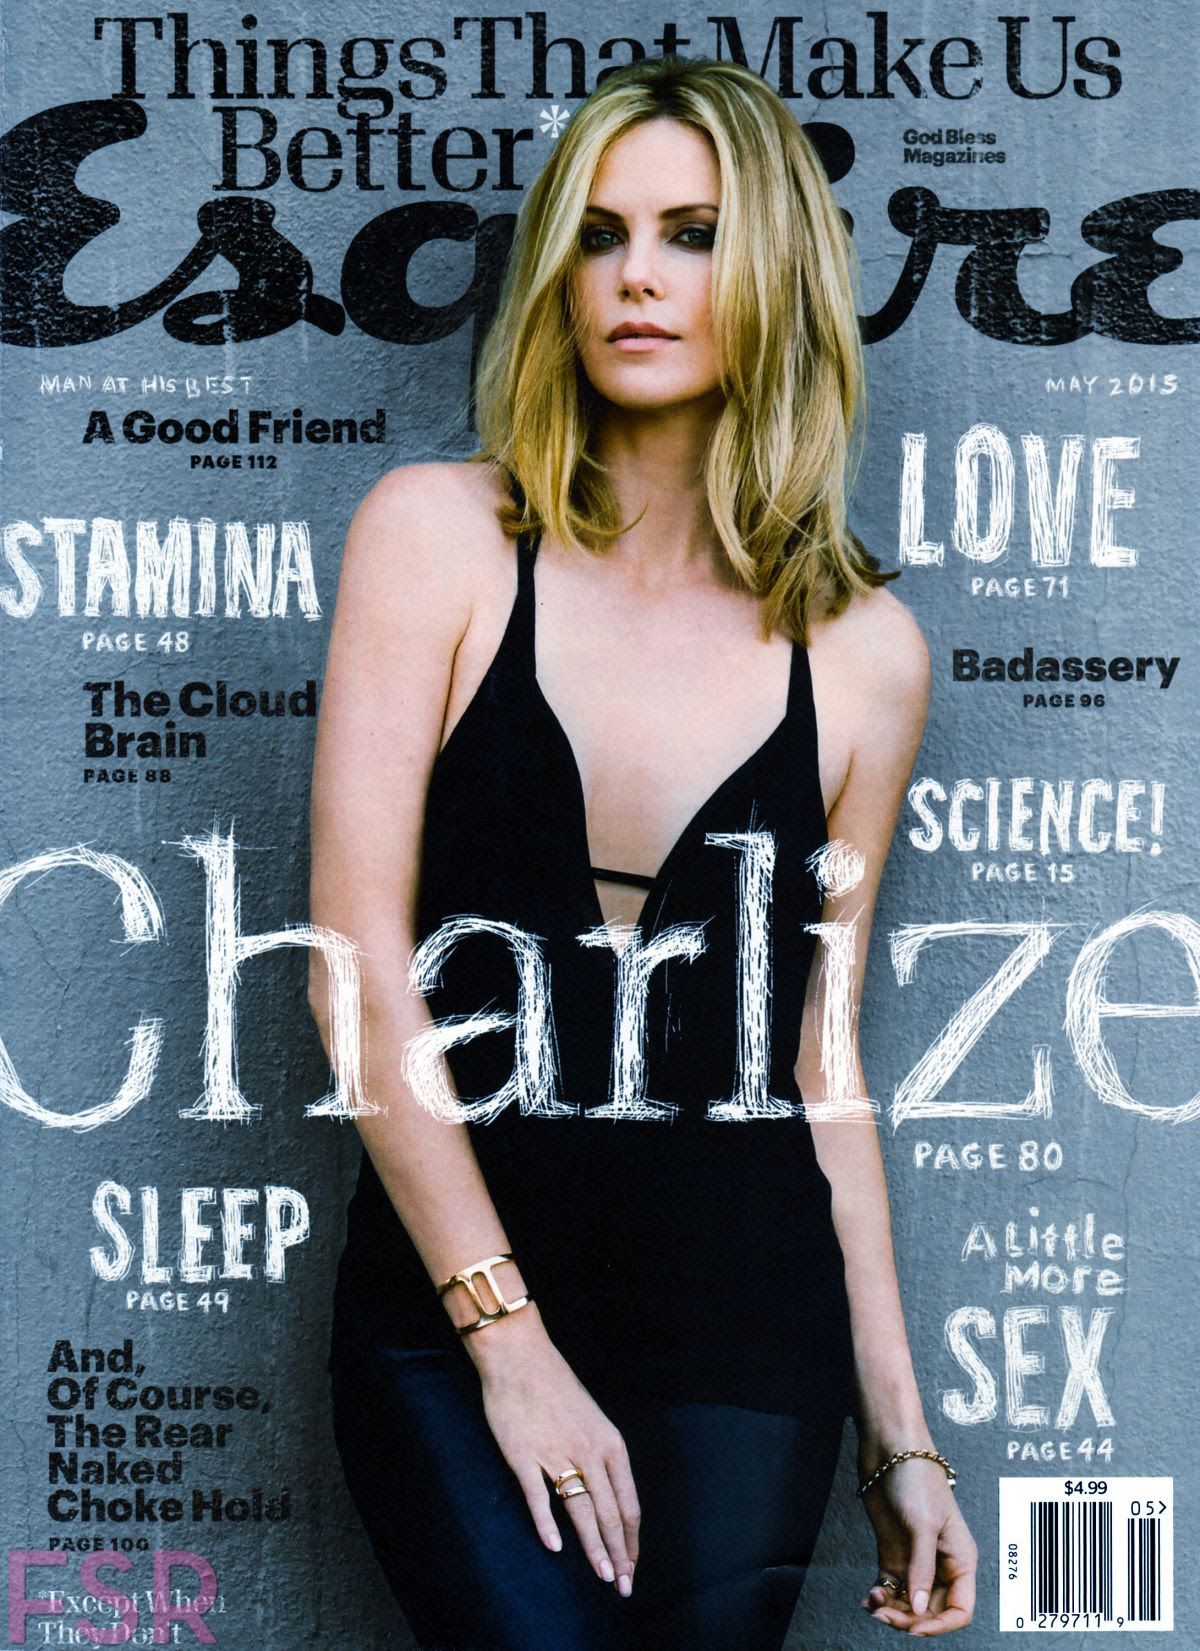 CHARLIZE THERON in Esquire Magazine, May 2015 Issue